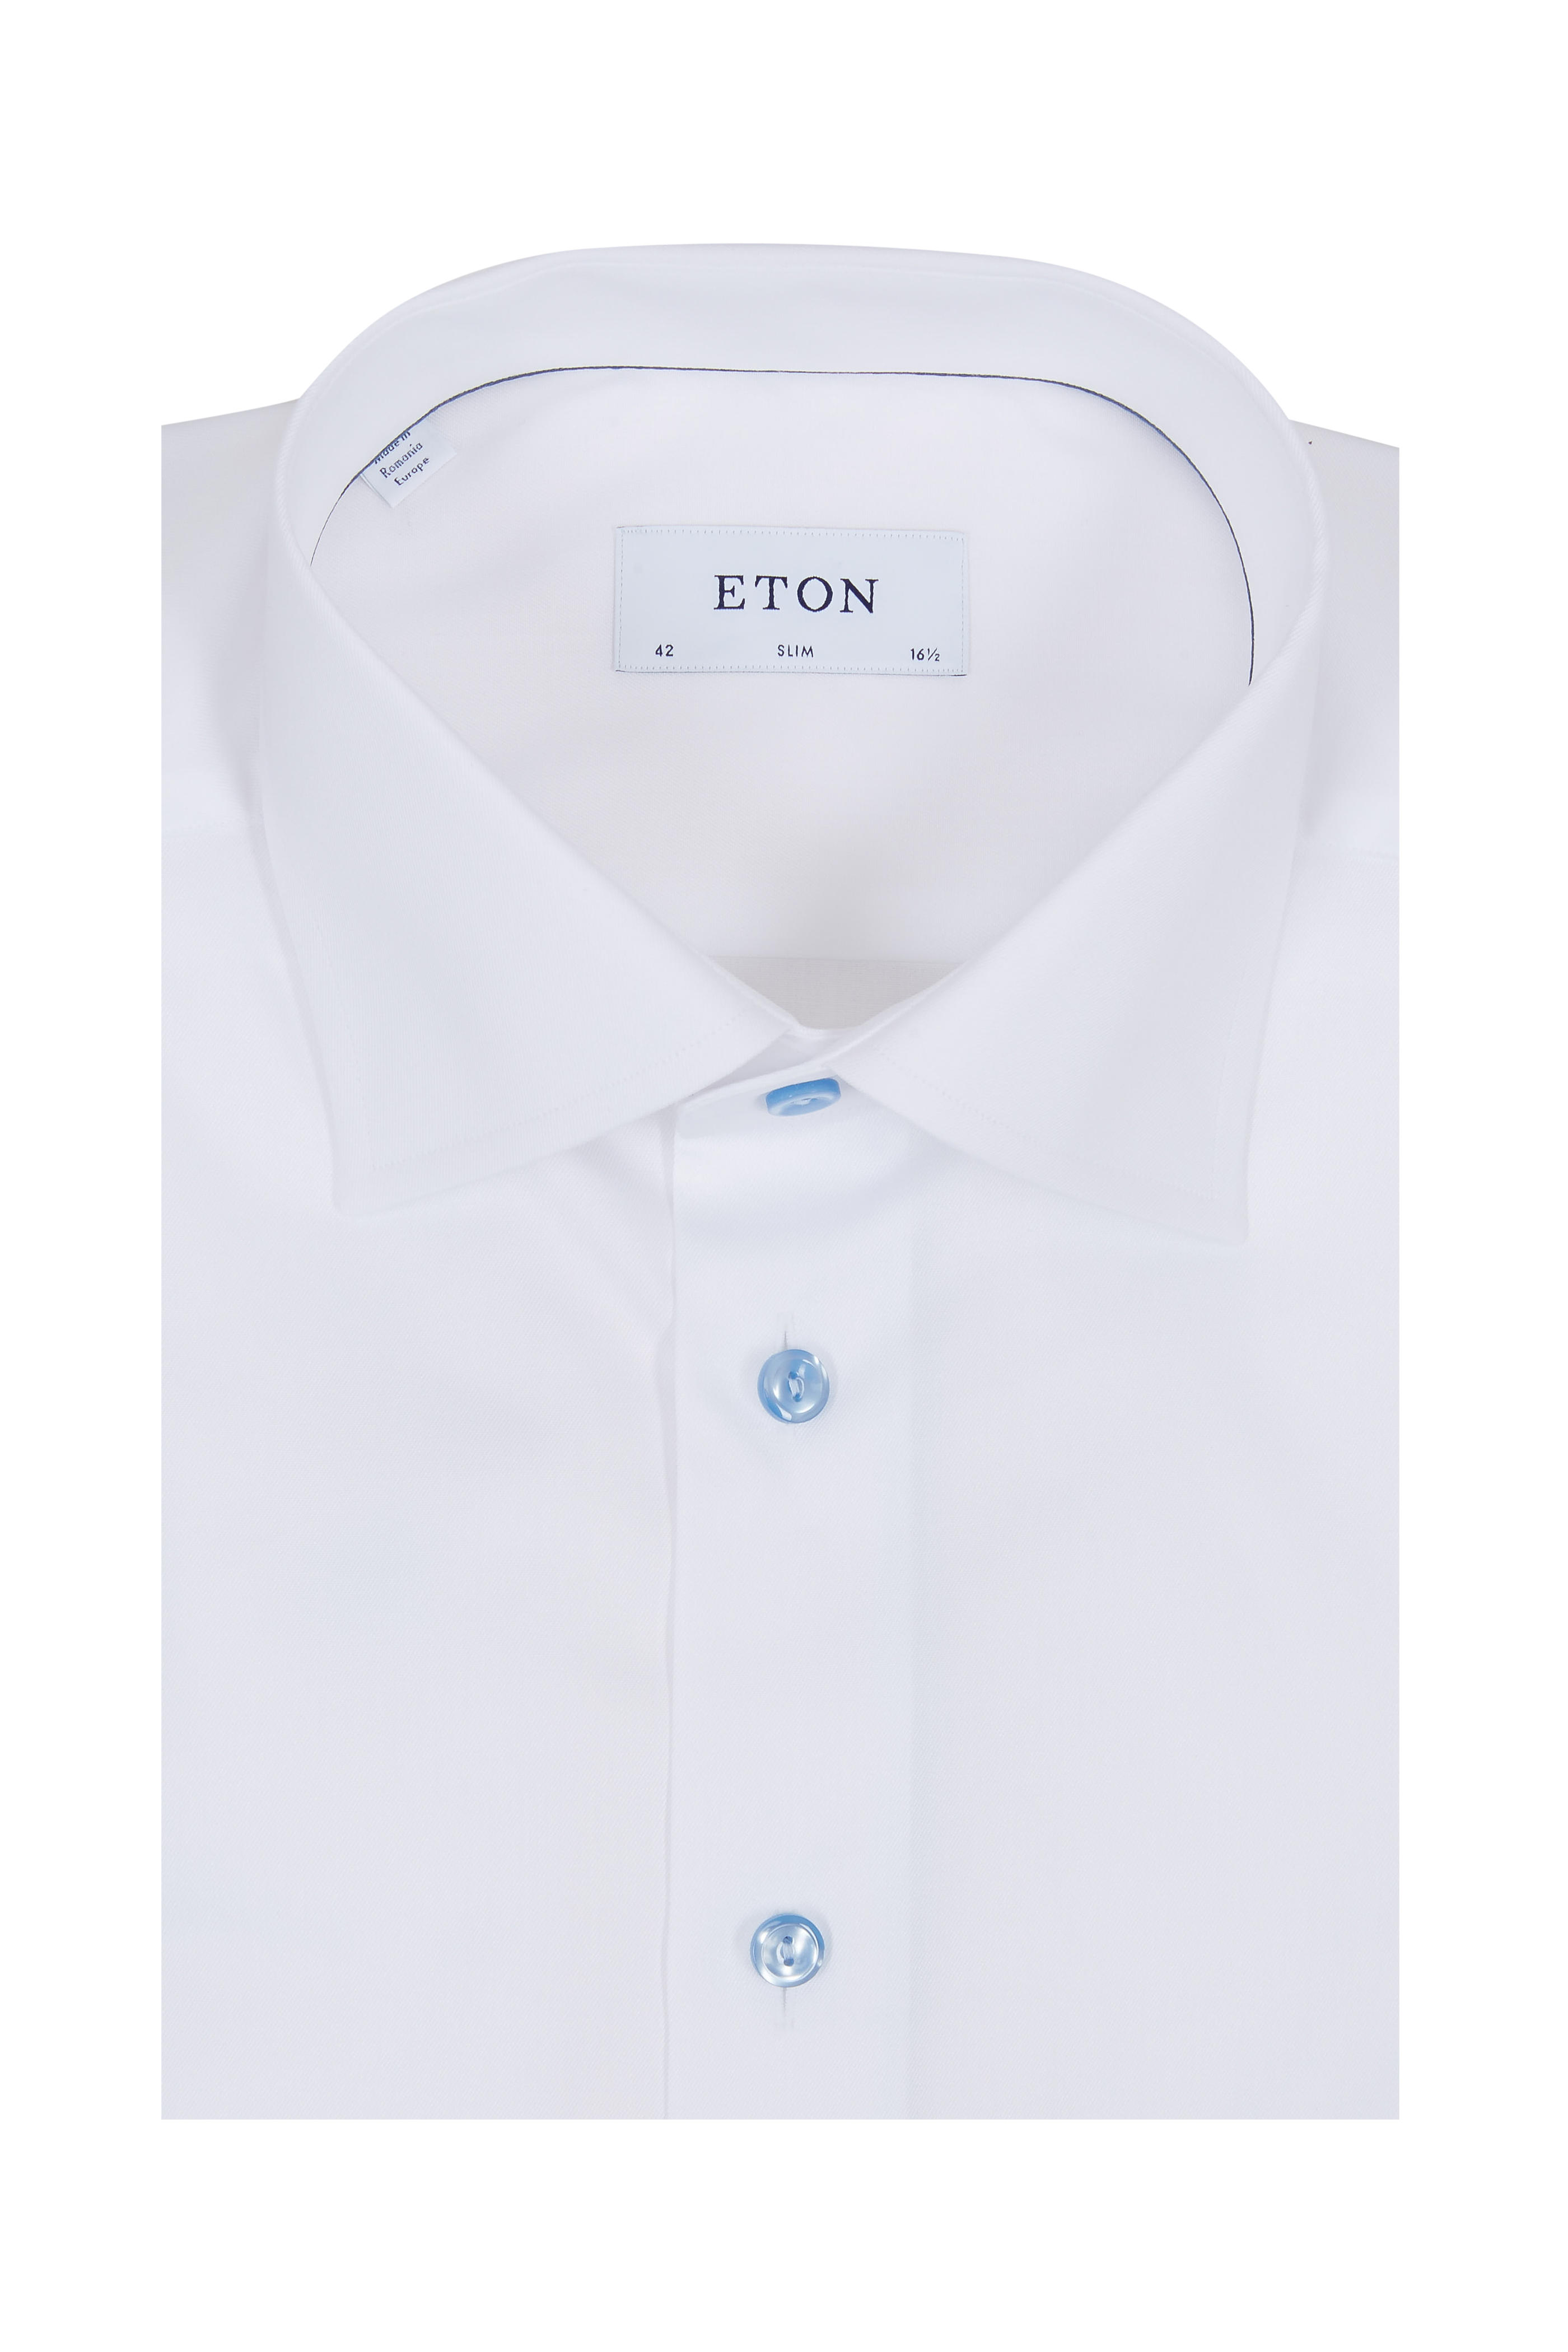 5ed97d7fa453af Eton - White Blue Button Slim Fit Dress Shirt | Mitchell Stores